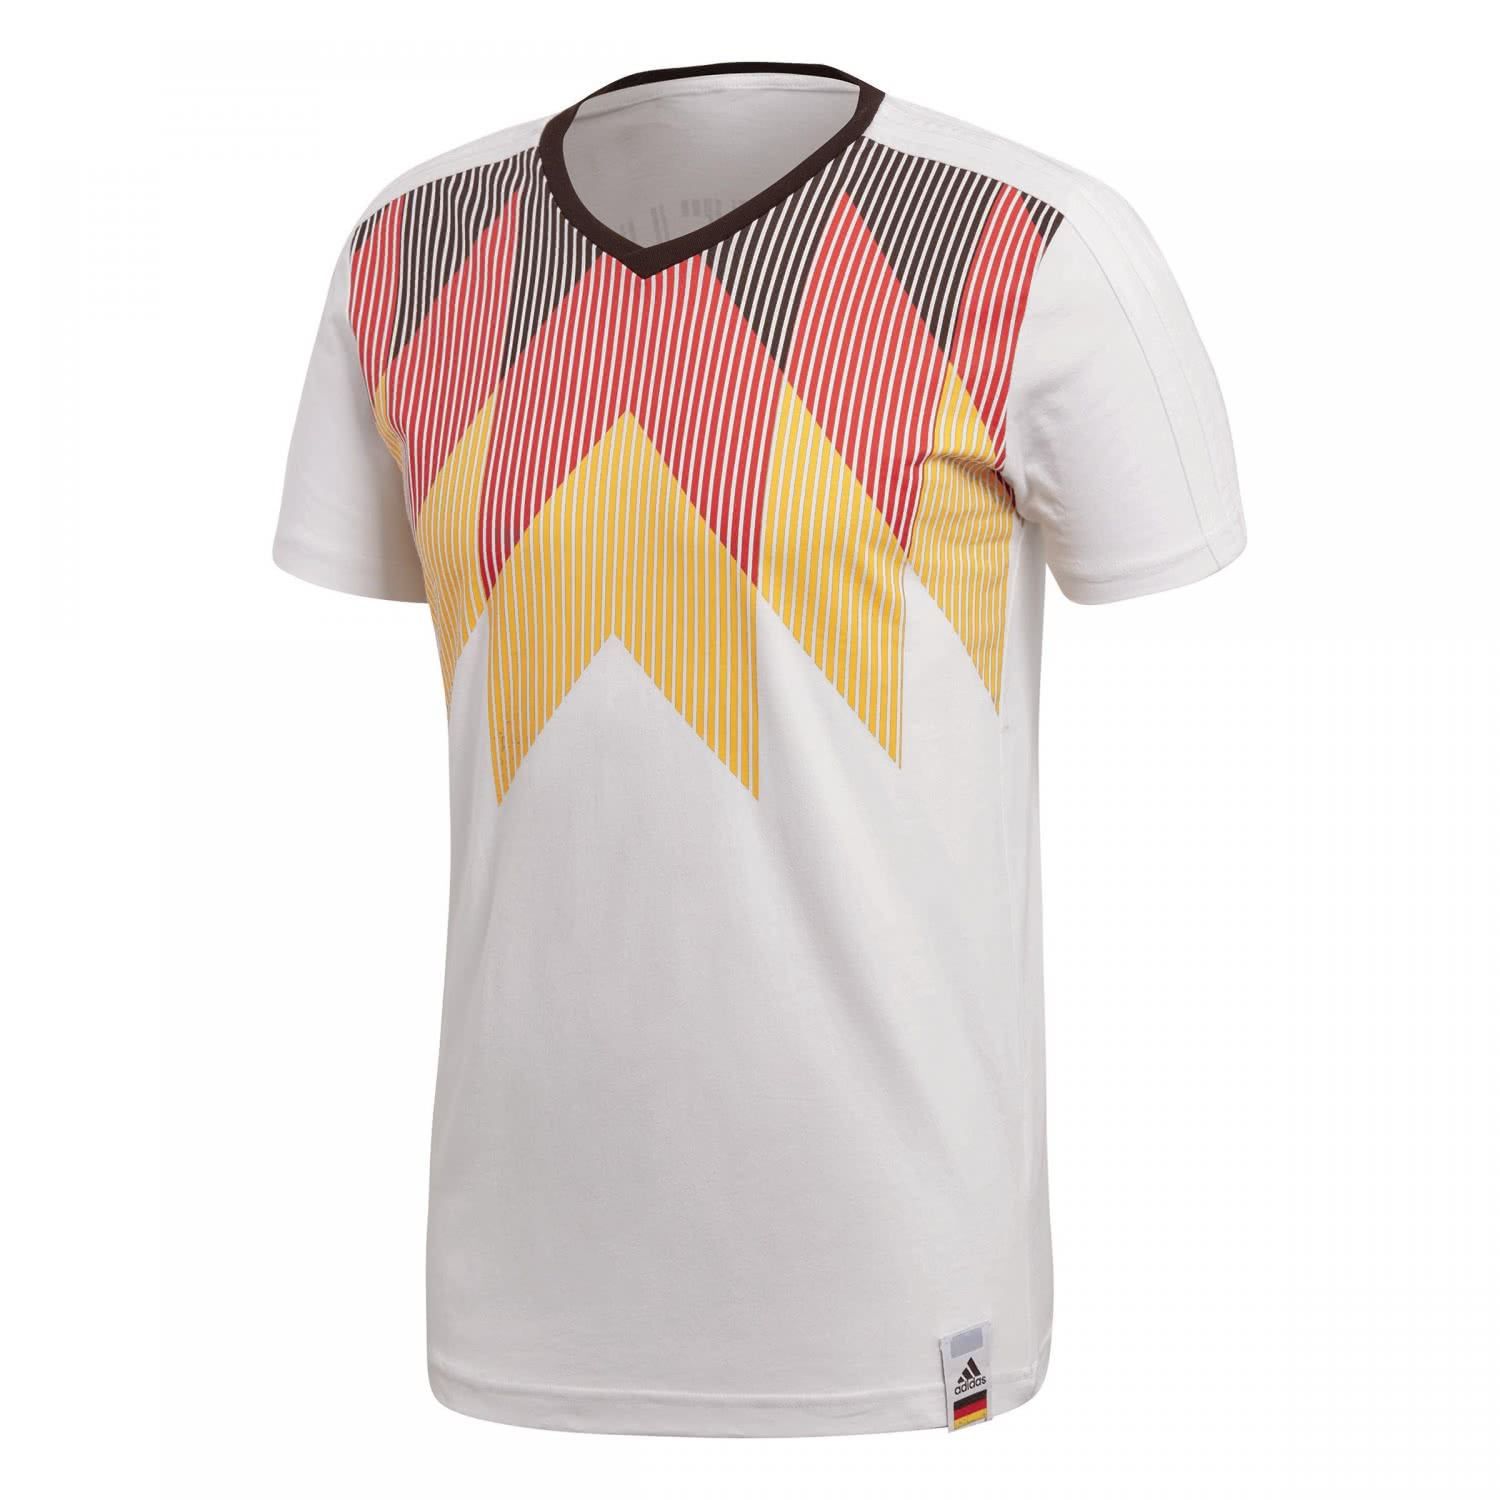 adidas herren dfb t shirt germany country identity tee. Black Bedroom Furniture Sets. Home Design Ideas